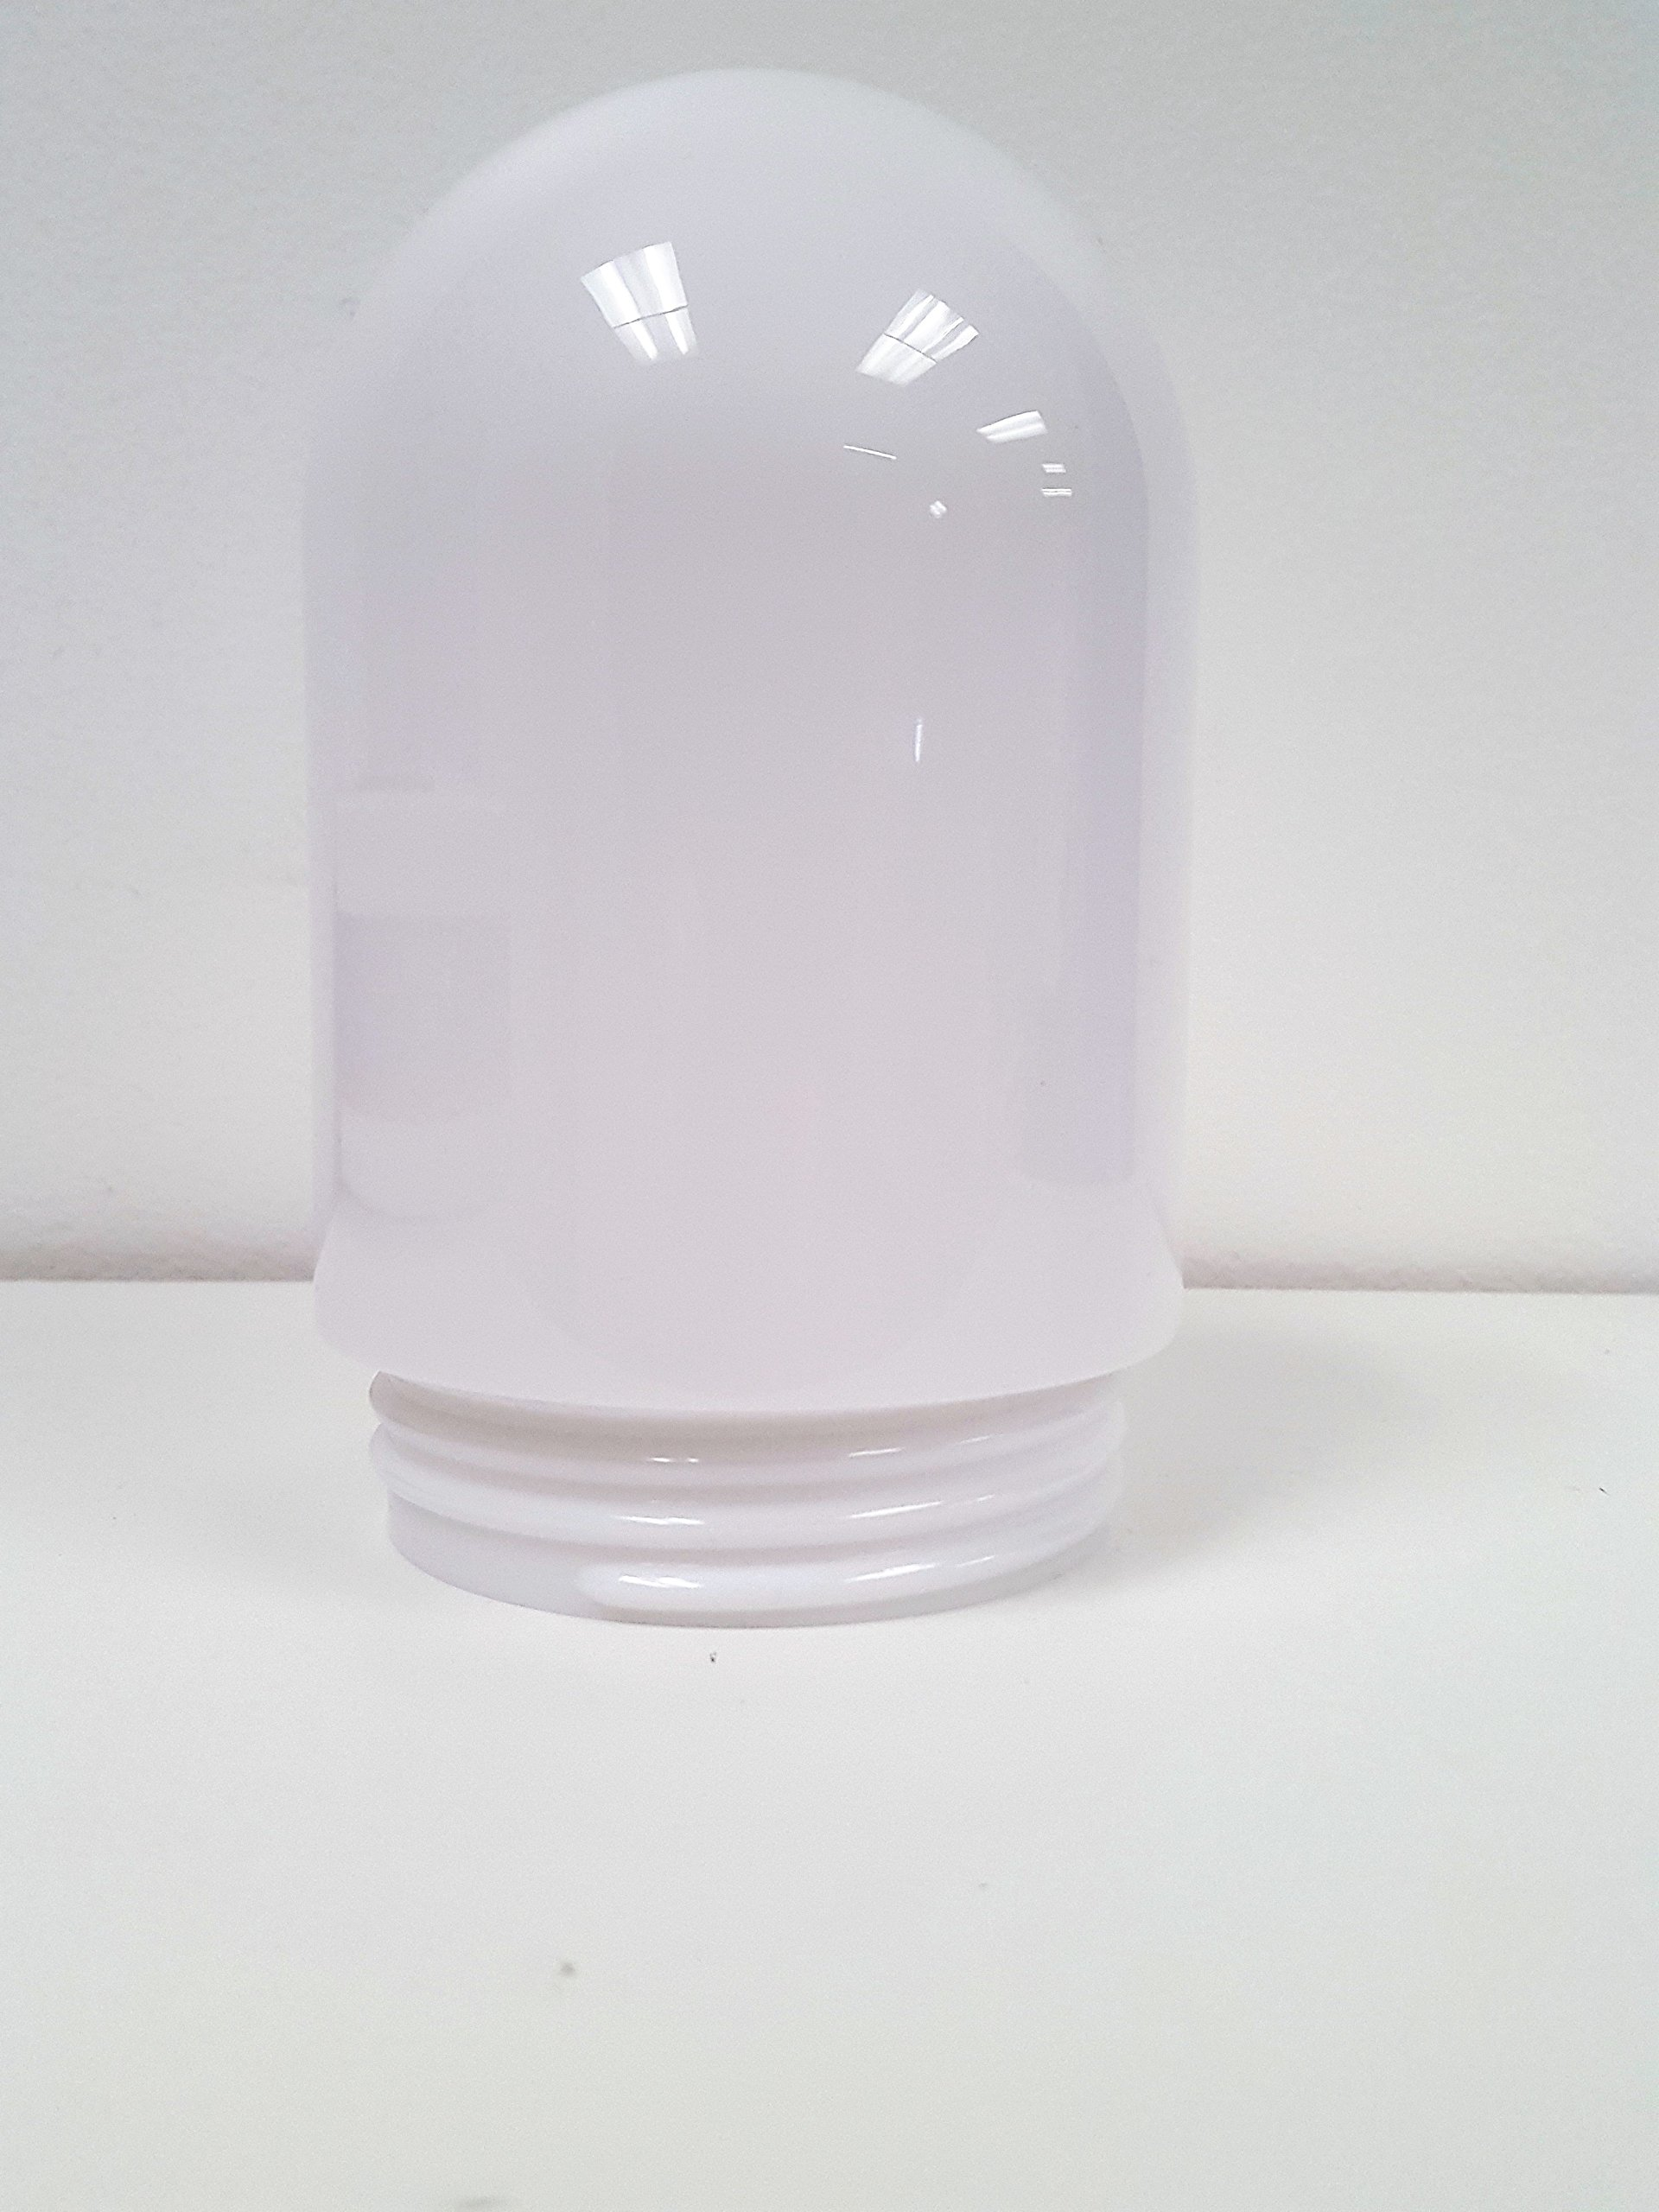 5'' Smooth White Polycarbonate Jar (Jelly Jar) With 3'' Threaded Neck